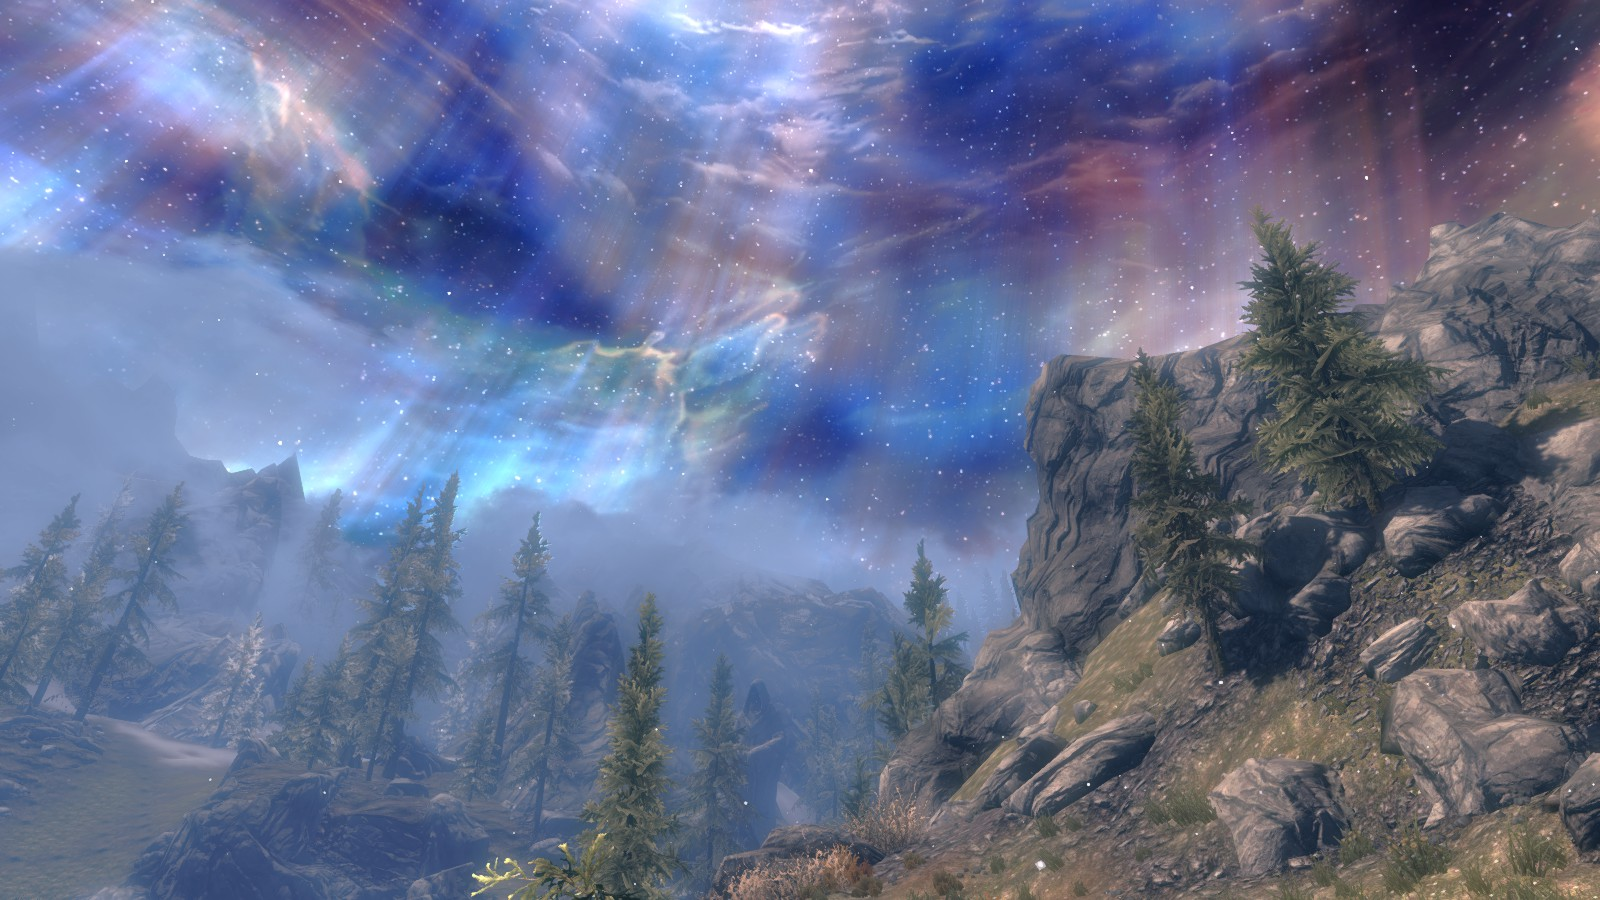 The elder scrolls v skyrim wallpaper and background image 1600x900 id 303804 wallpaper abyss - Wallpapers 1600x900 ...